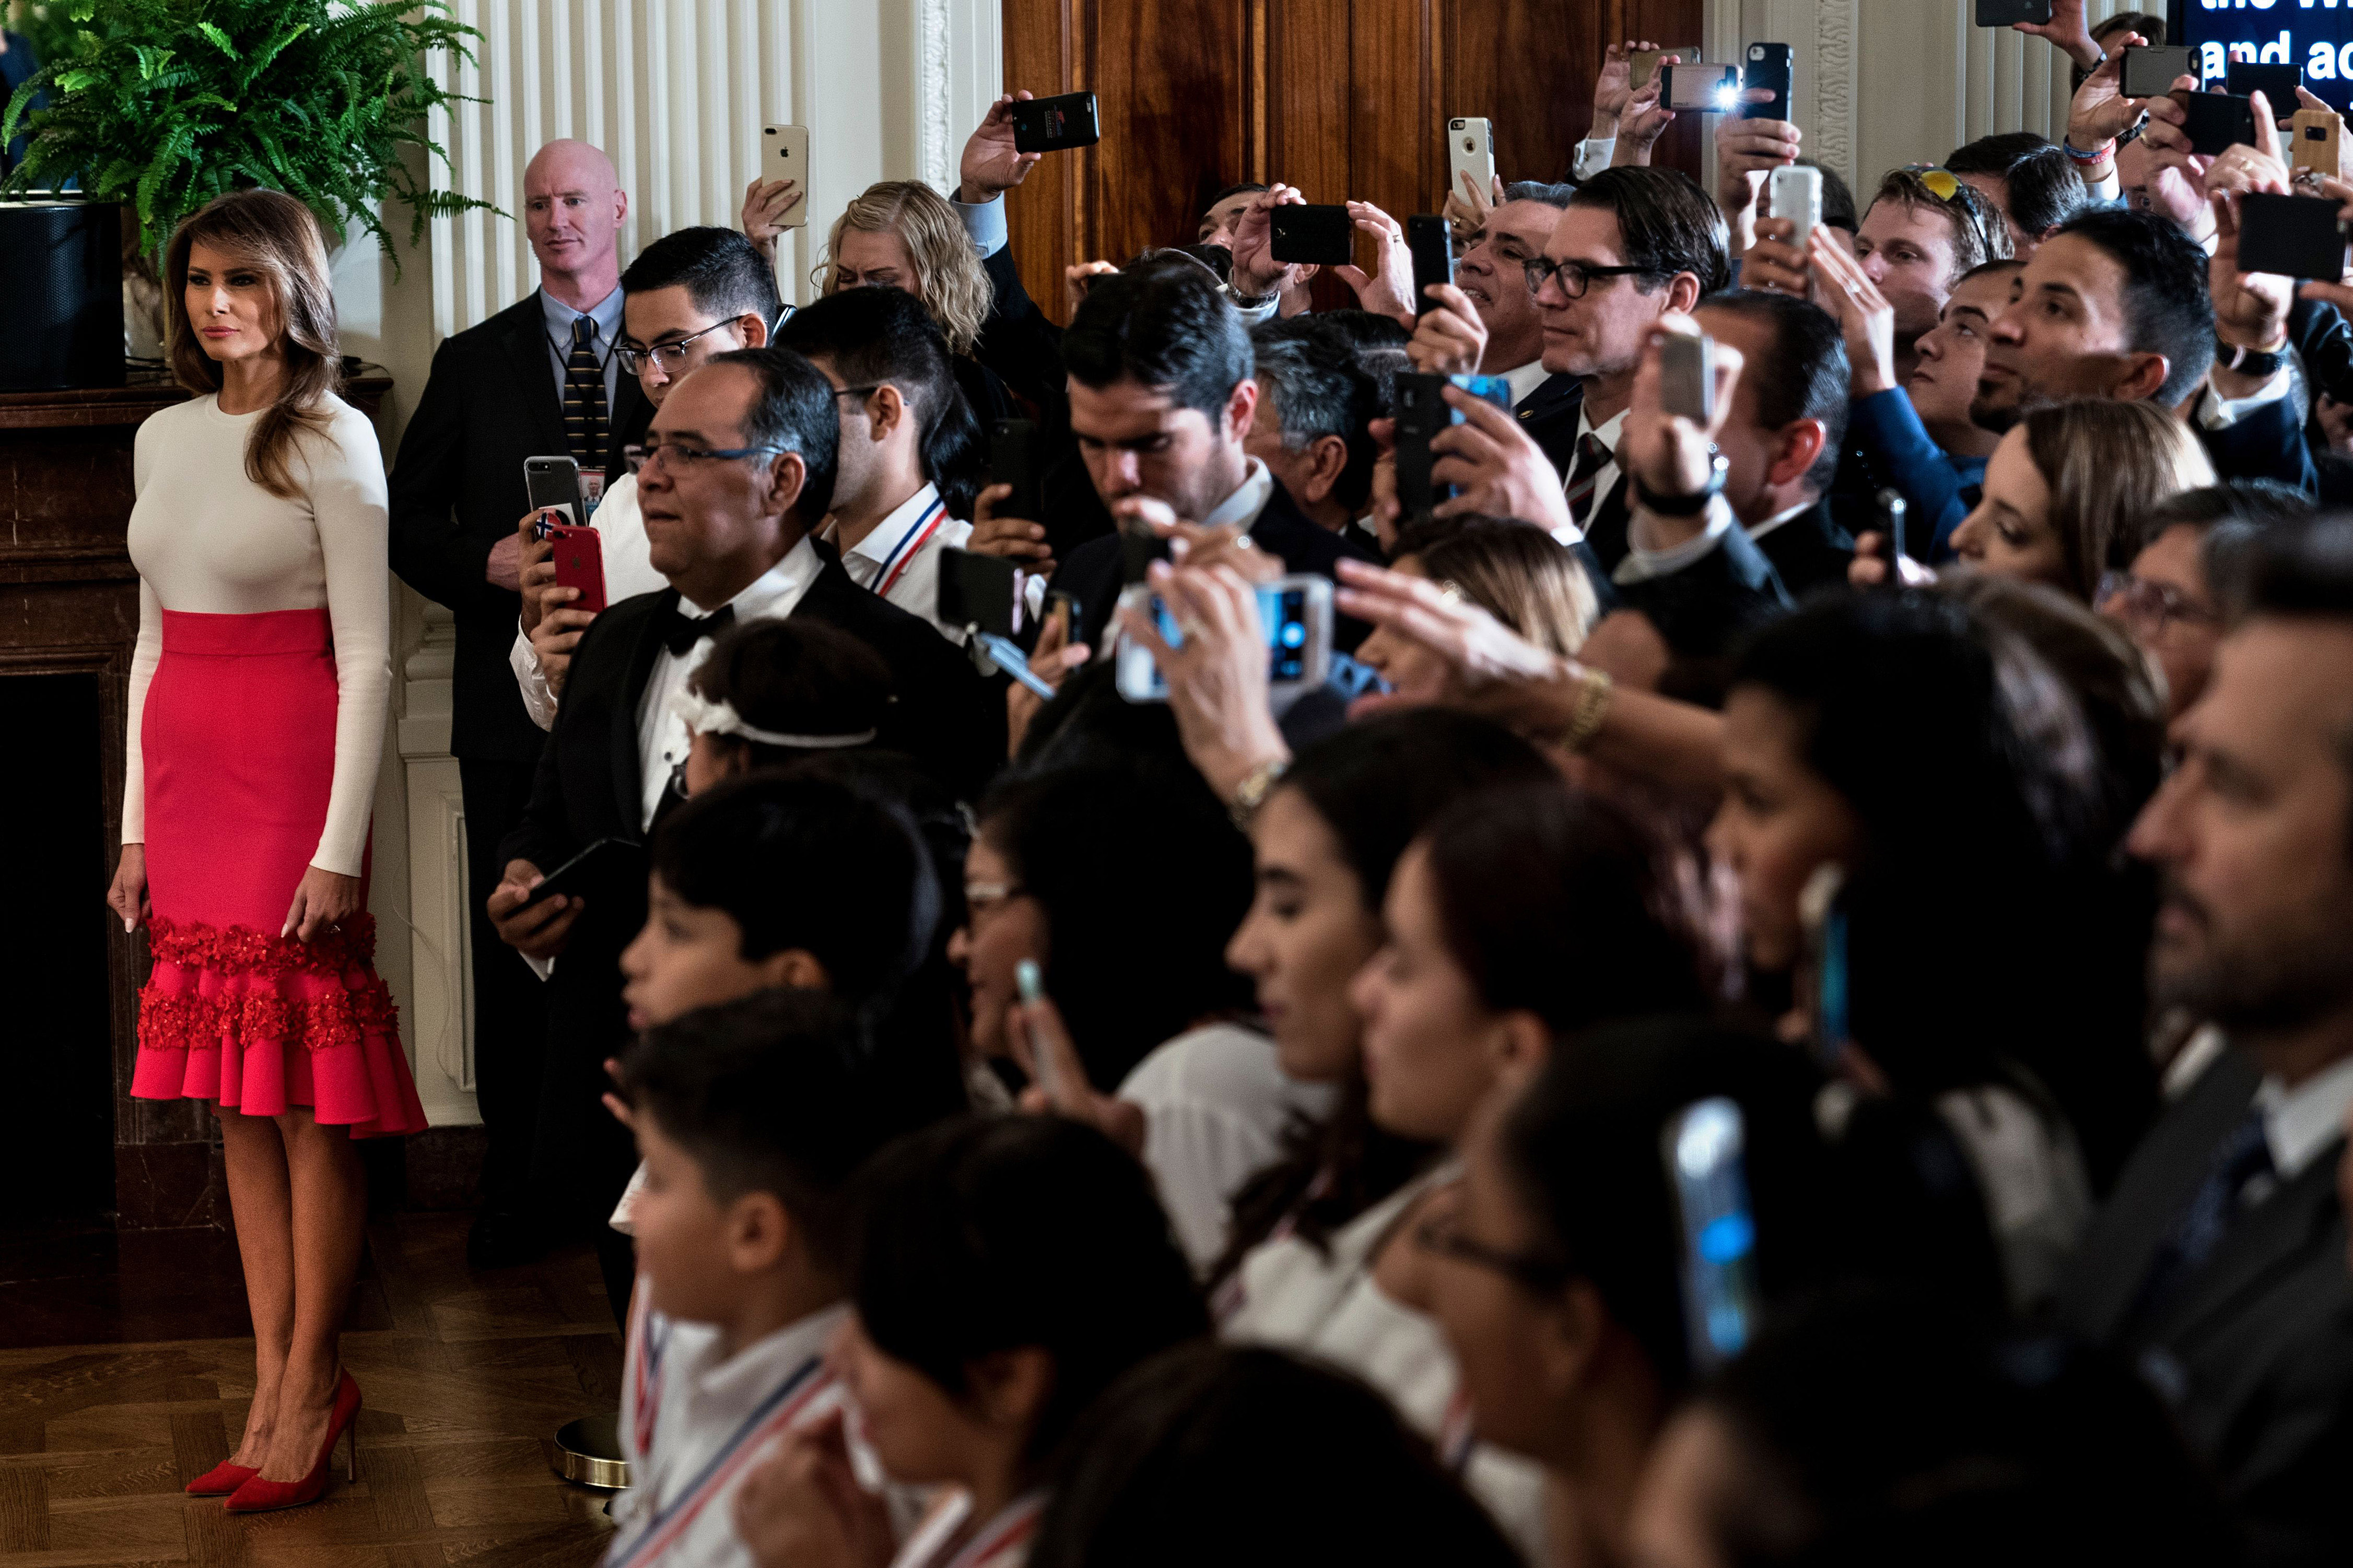 First lady Melania Trump wearing a flamenco-style red skirt and off-white top during a Hispanic Heritage Month event in the East Room of the White House Oct. 6, 2017.